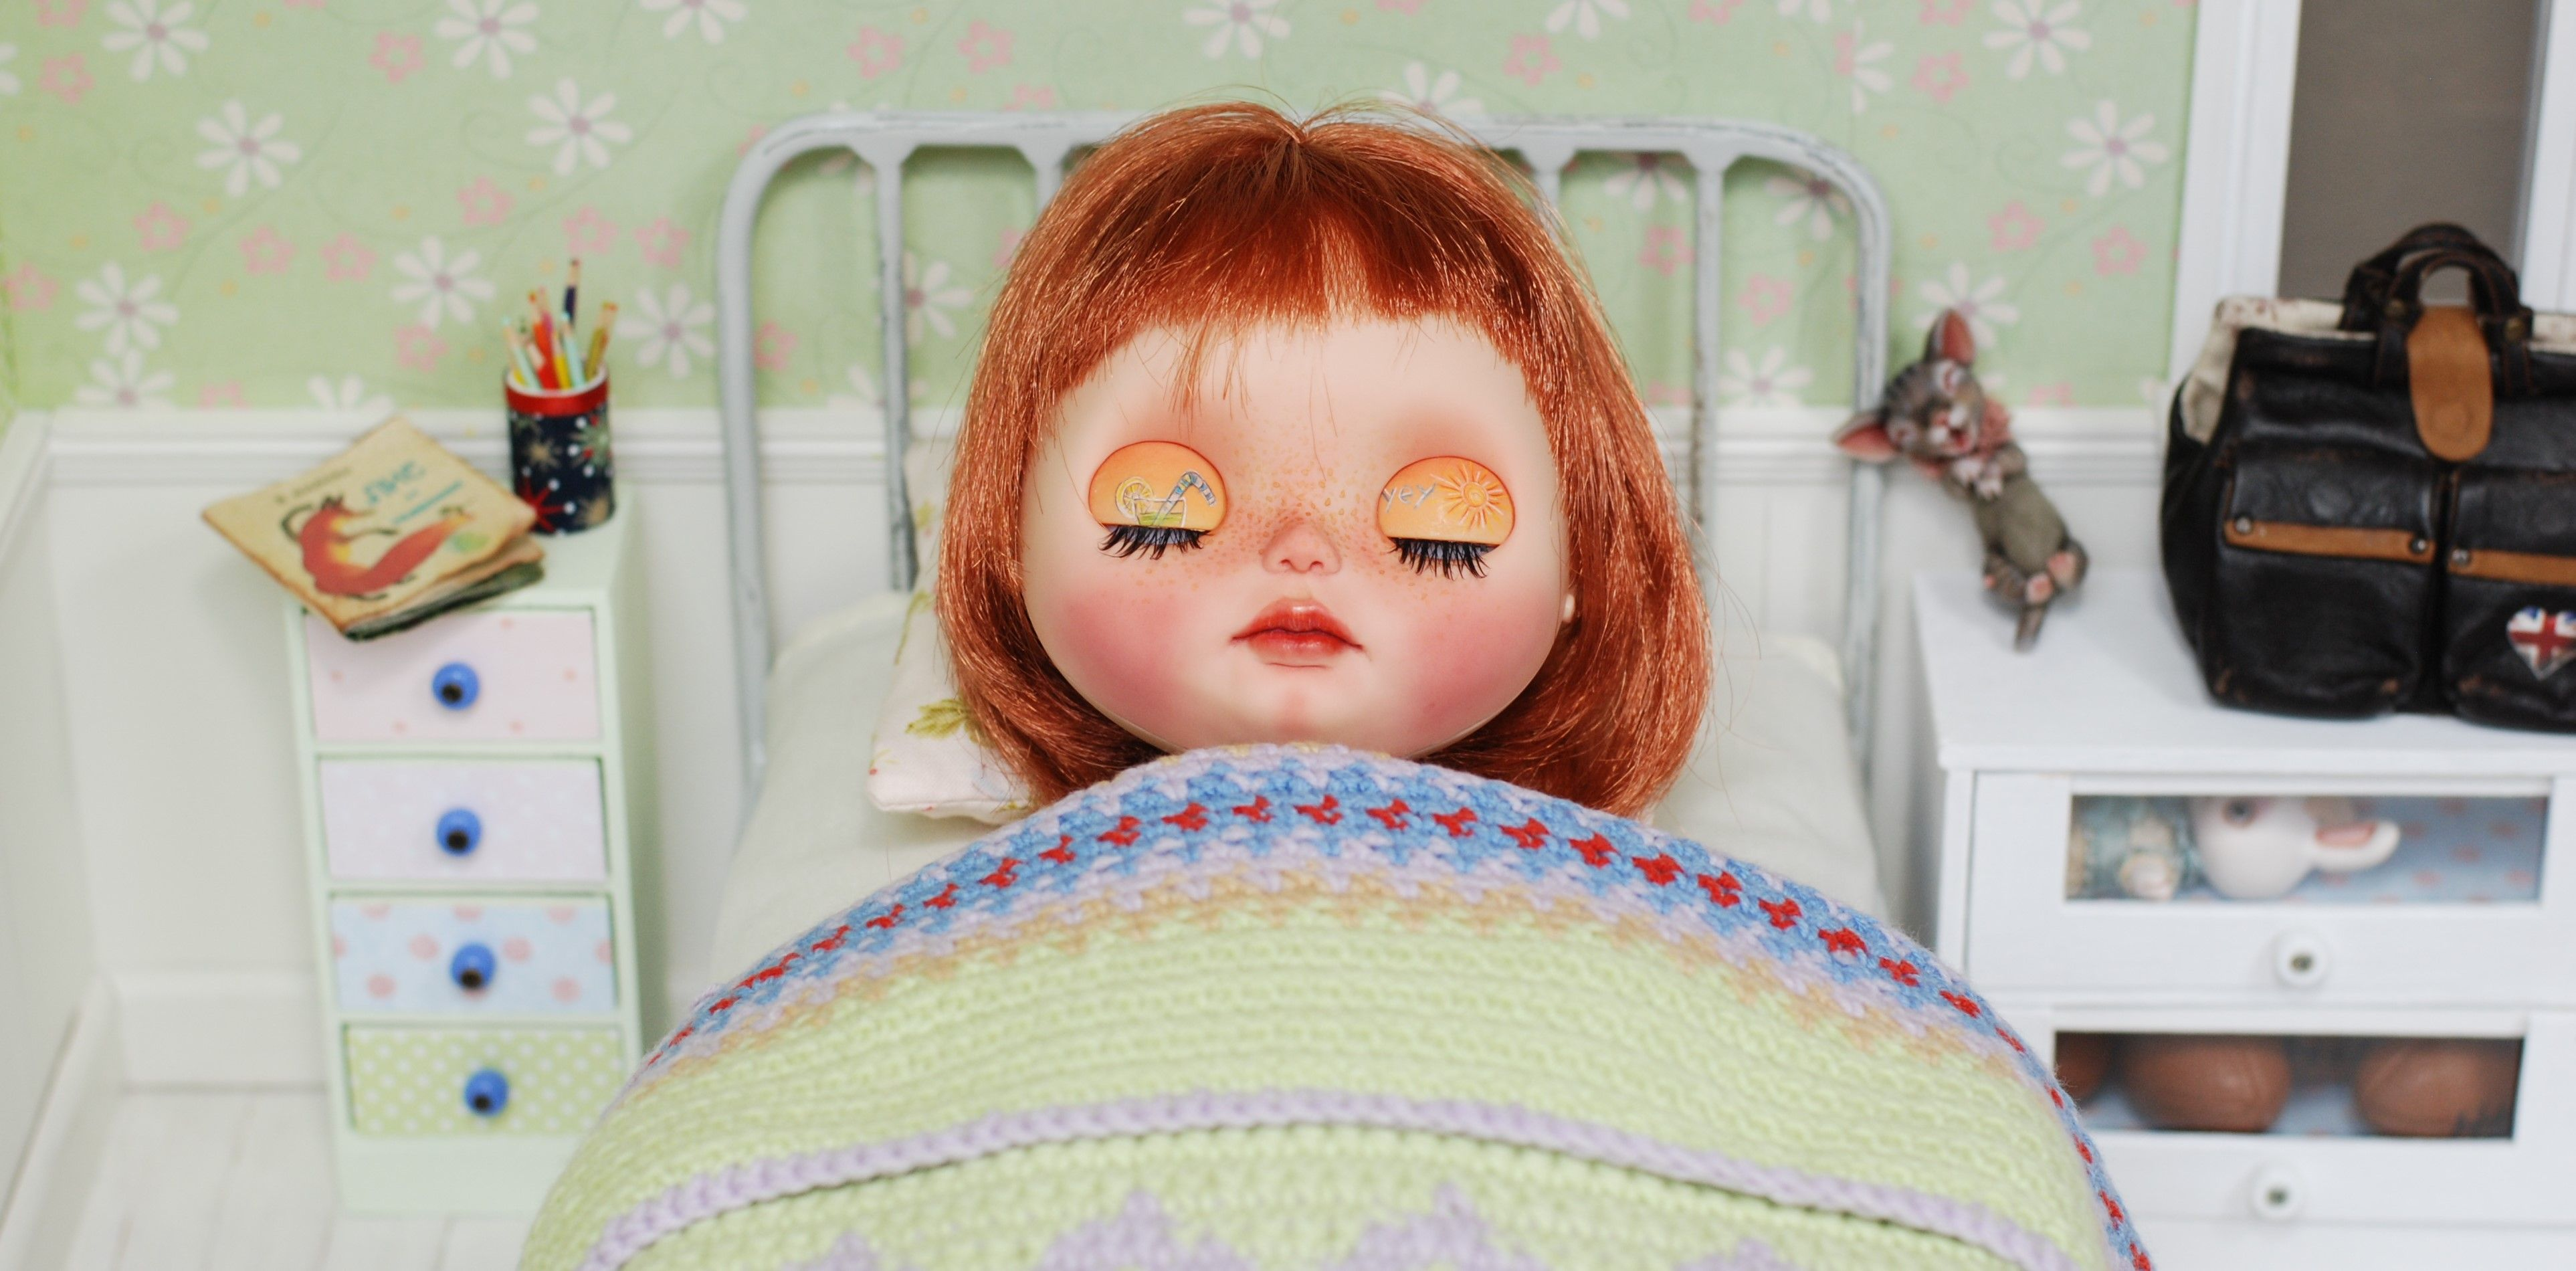 Metal Bed Blythe Littlefee Penny by Linda Macario YOSD With Accessories For Dolls Quilt Handmade Patchwork Diorama 1/6 Bjd Dal Pullip - https://www.etsy.com/listing/470639691/metal-bed-blythe-littlefee-penny-by?ref=shop_home_active_5